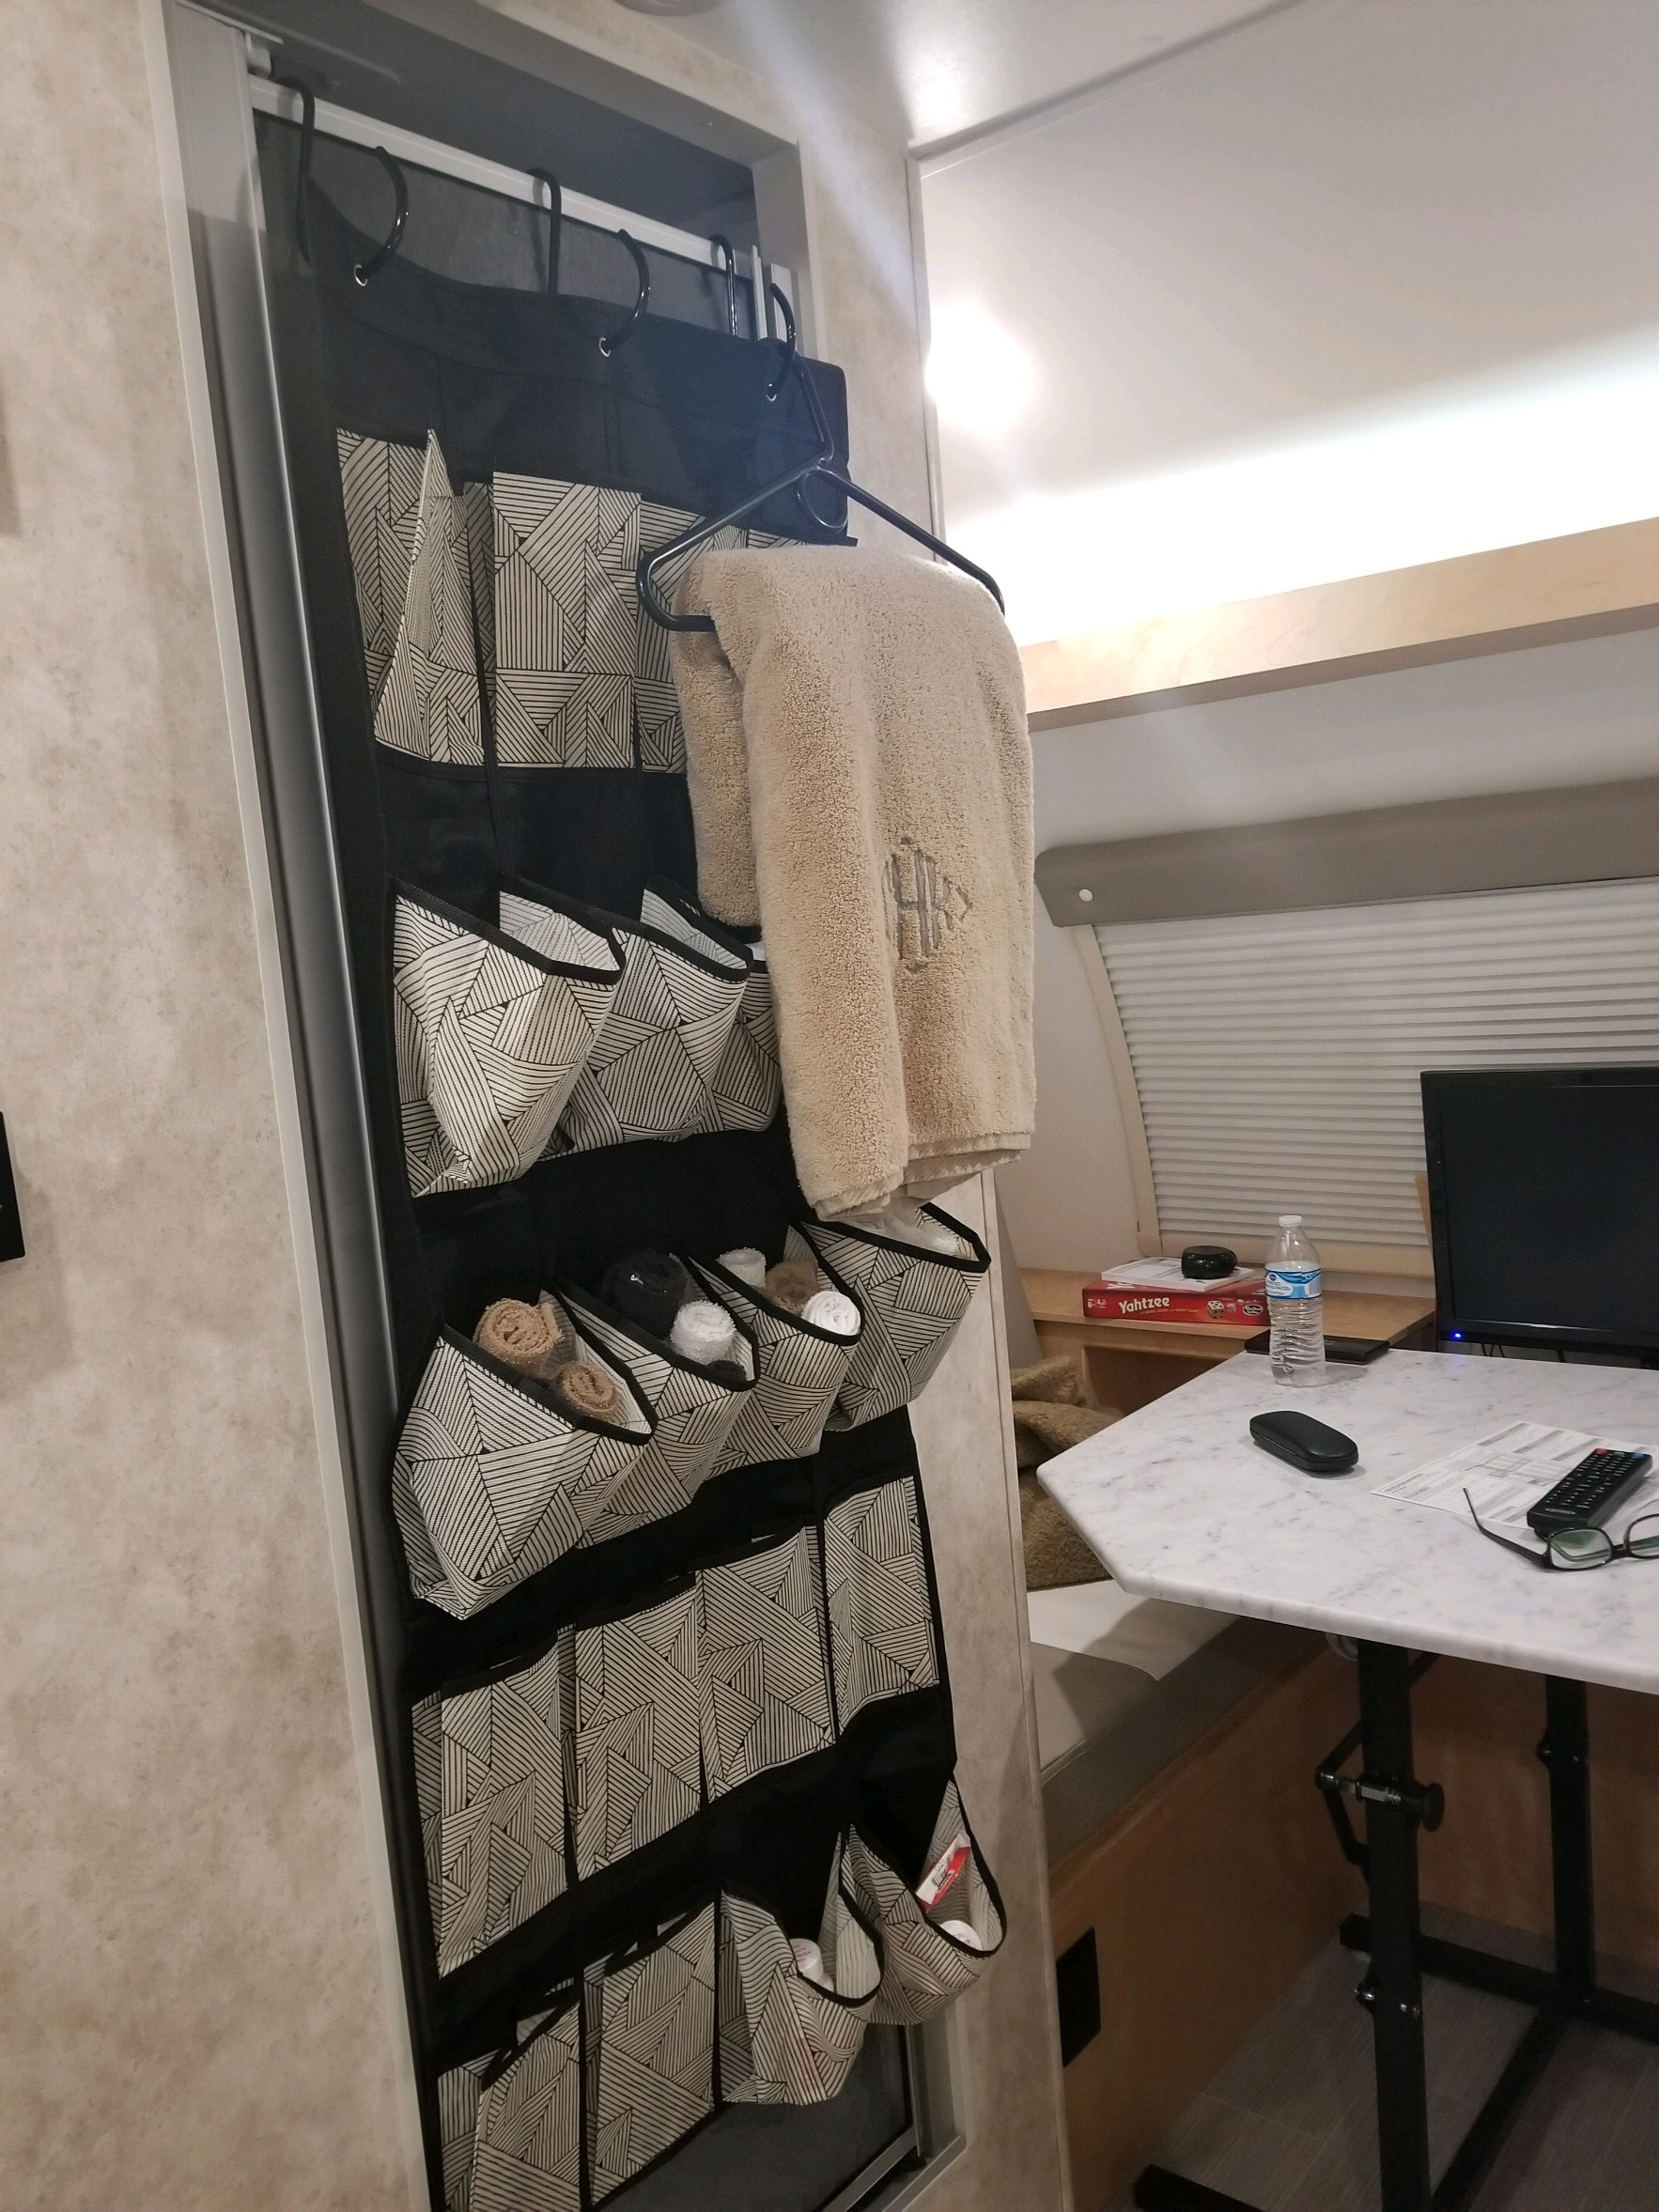 Shower door w/ organizer and dining area w/ table up.. Little Guy Max 2019